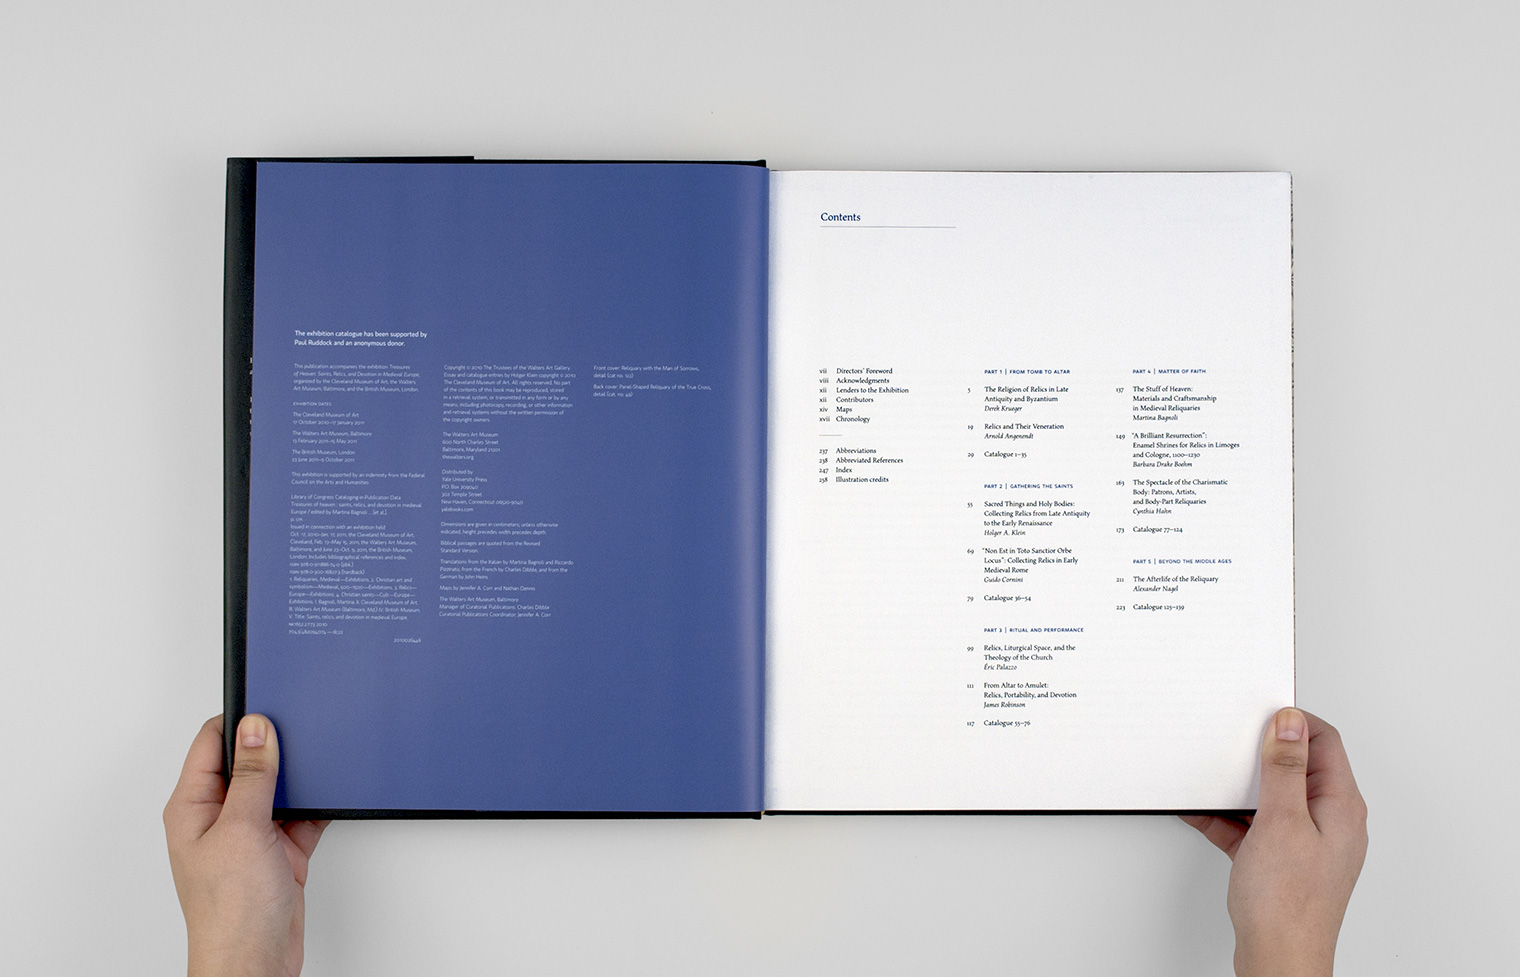 The copyright and contents pages.